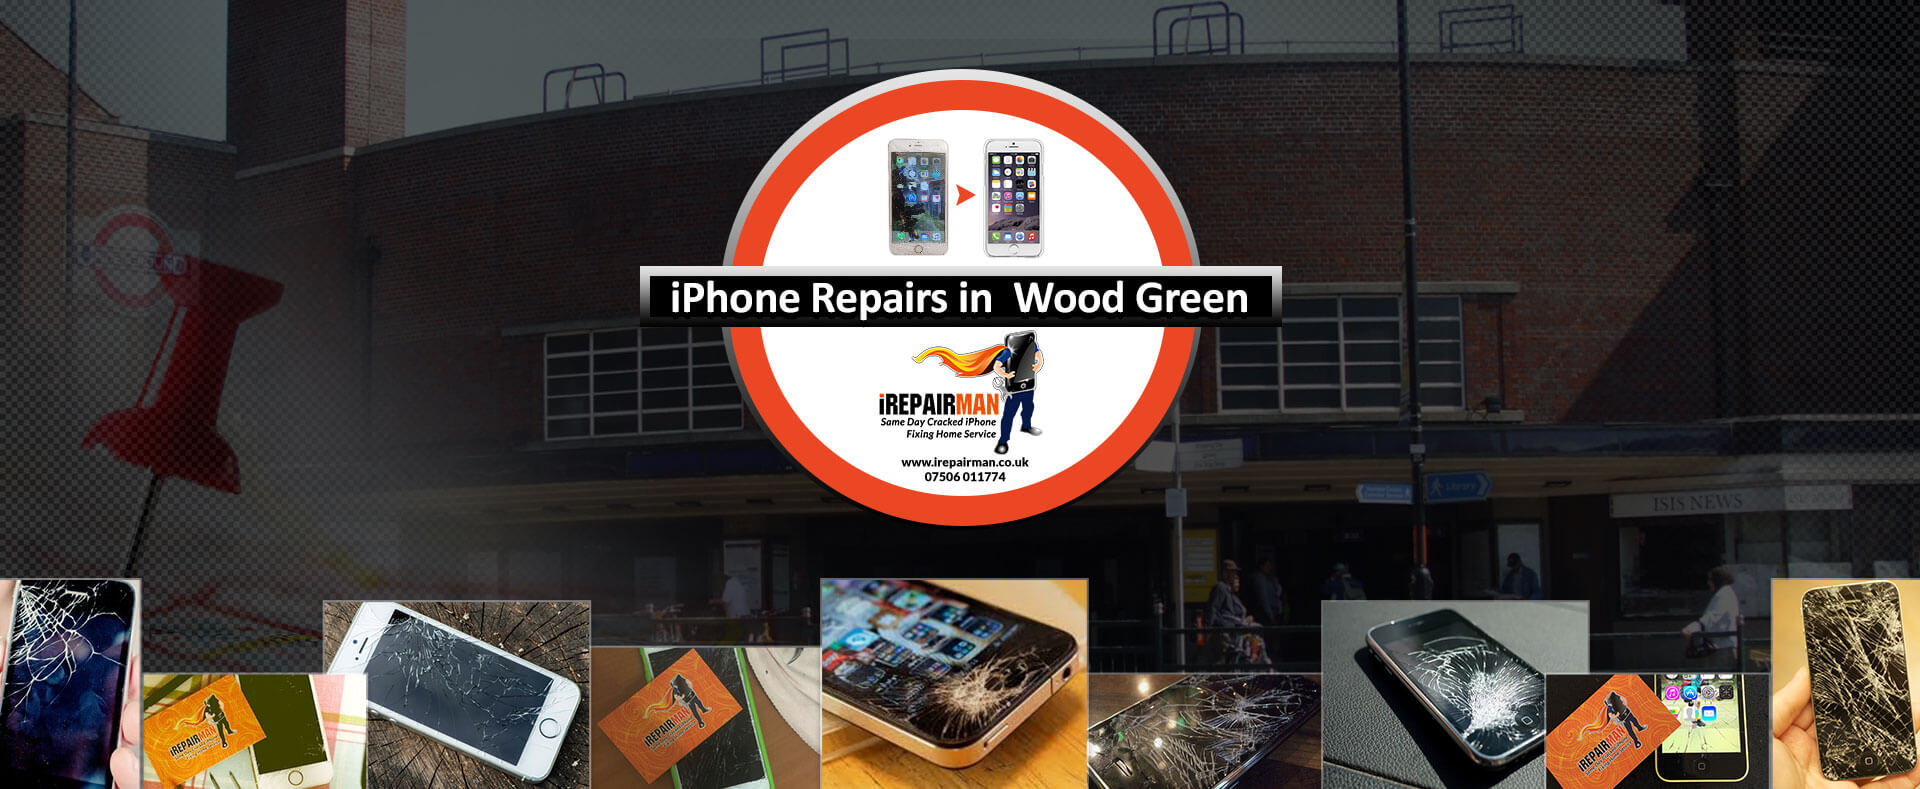 iPhone Repairs in Wood Green